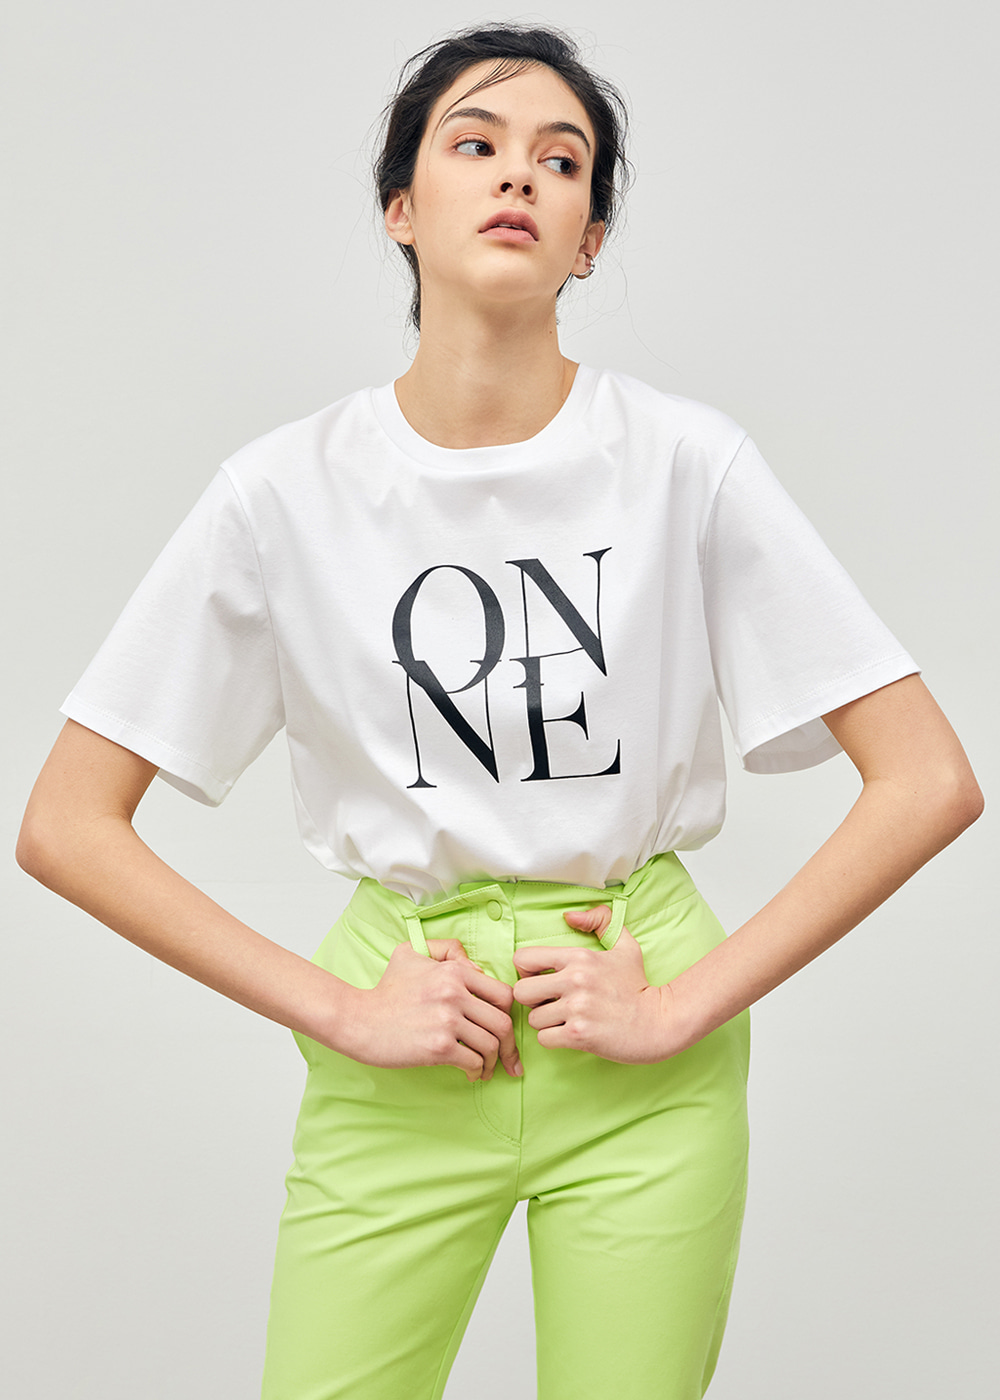 Tape-pointed ONNE T-Shirt White